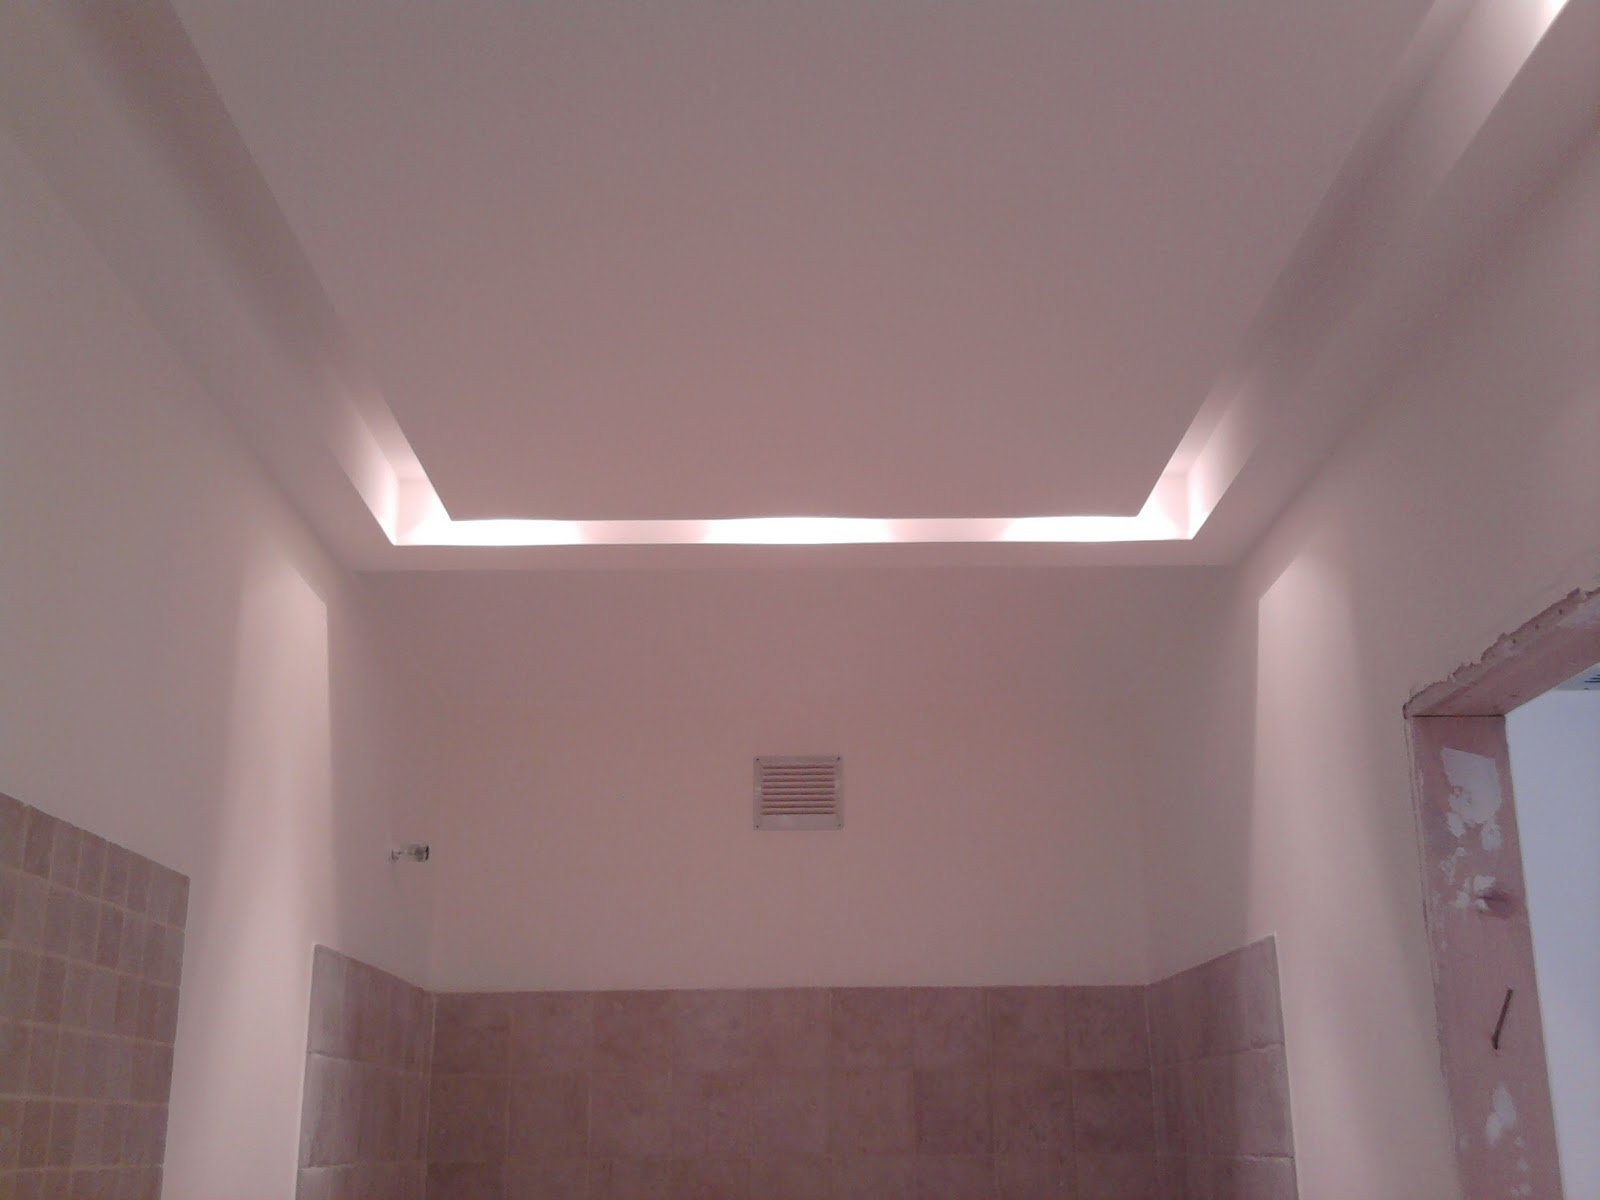 Illuminazione soffitto ribassato ~ fatua.net for .